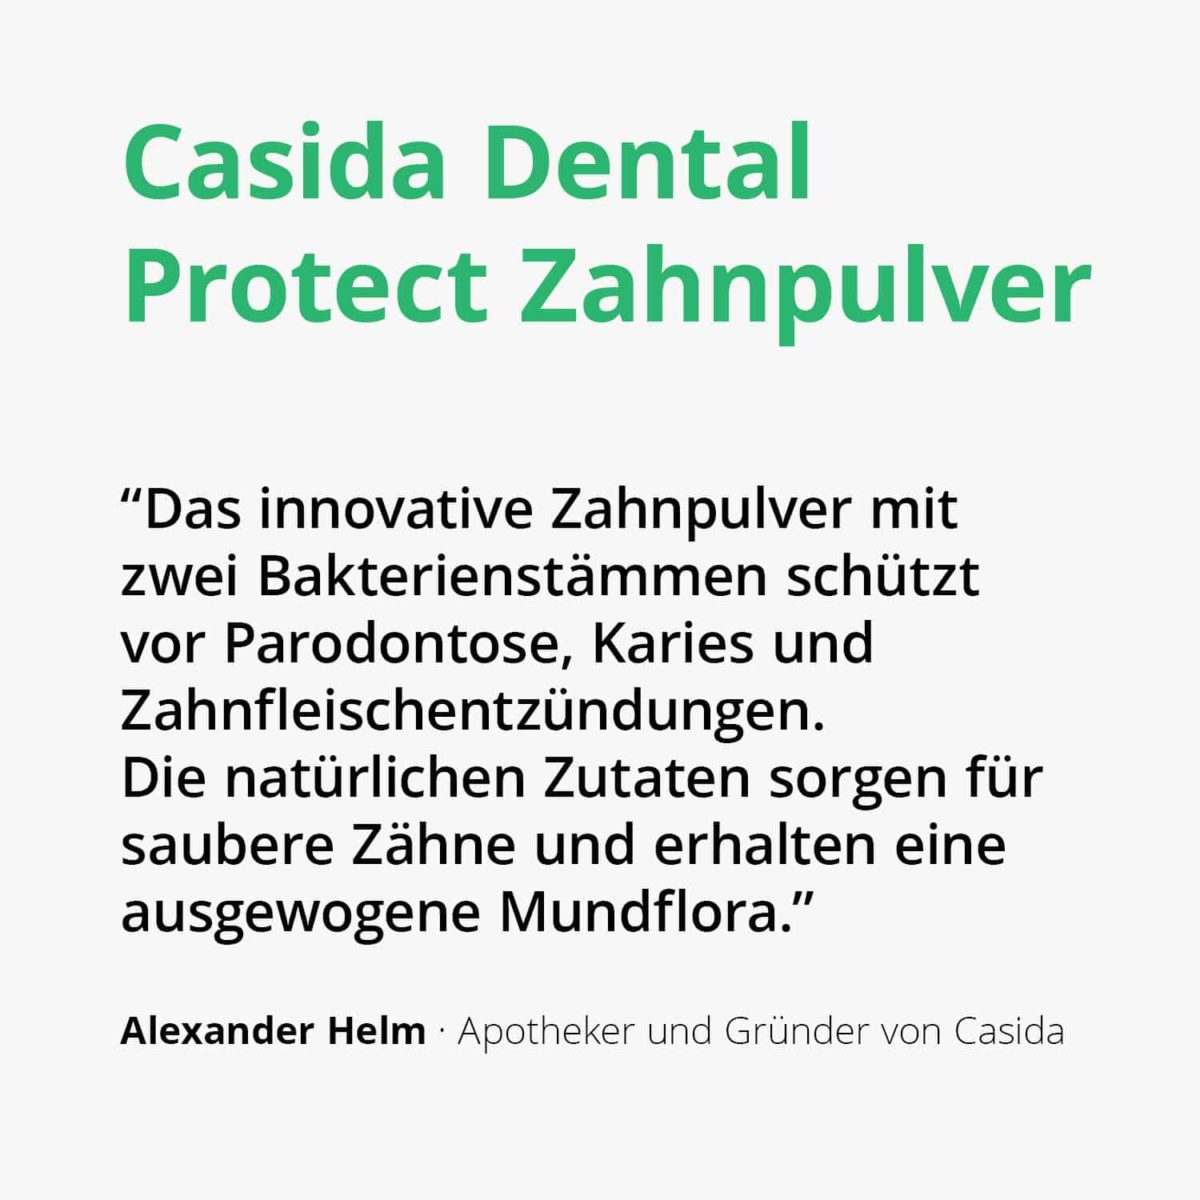 Casida Dental Protect Tooth Powder 30 g 16918444 PZN pharmacy caries Dental care periodontal disease gums oral flora protection